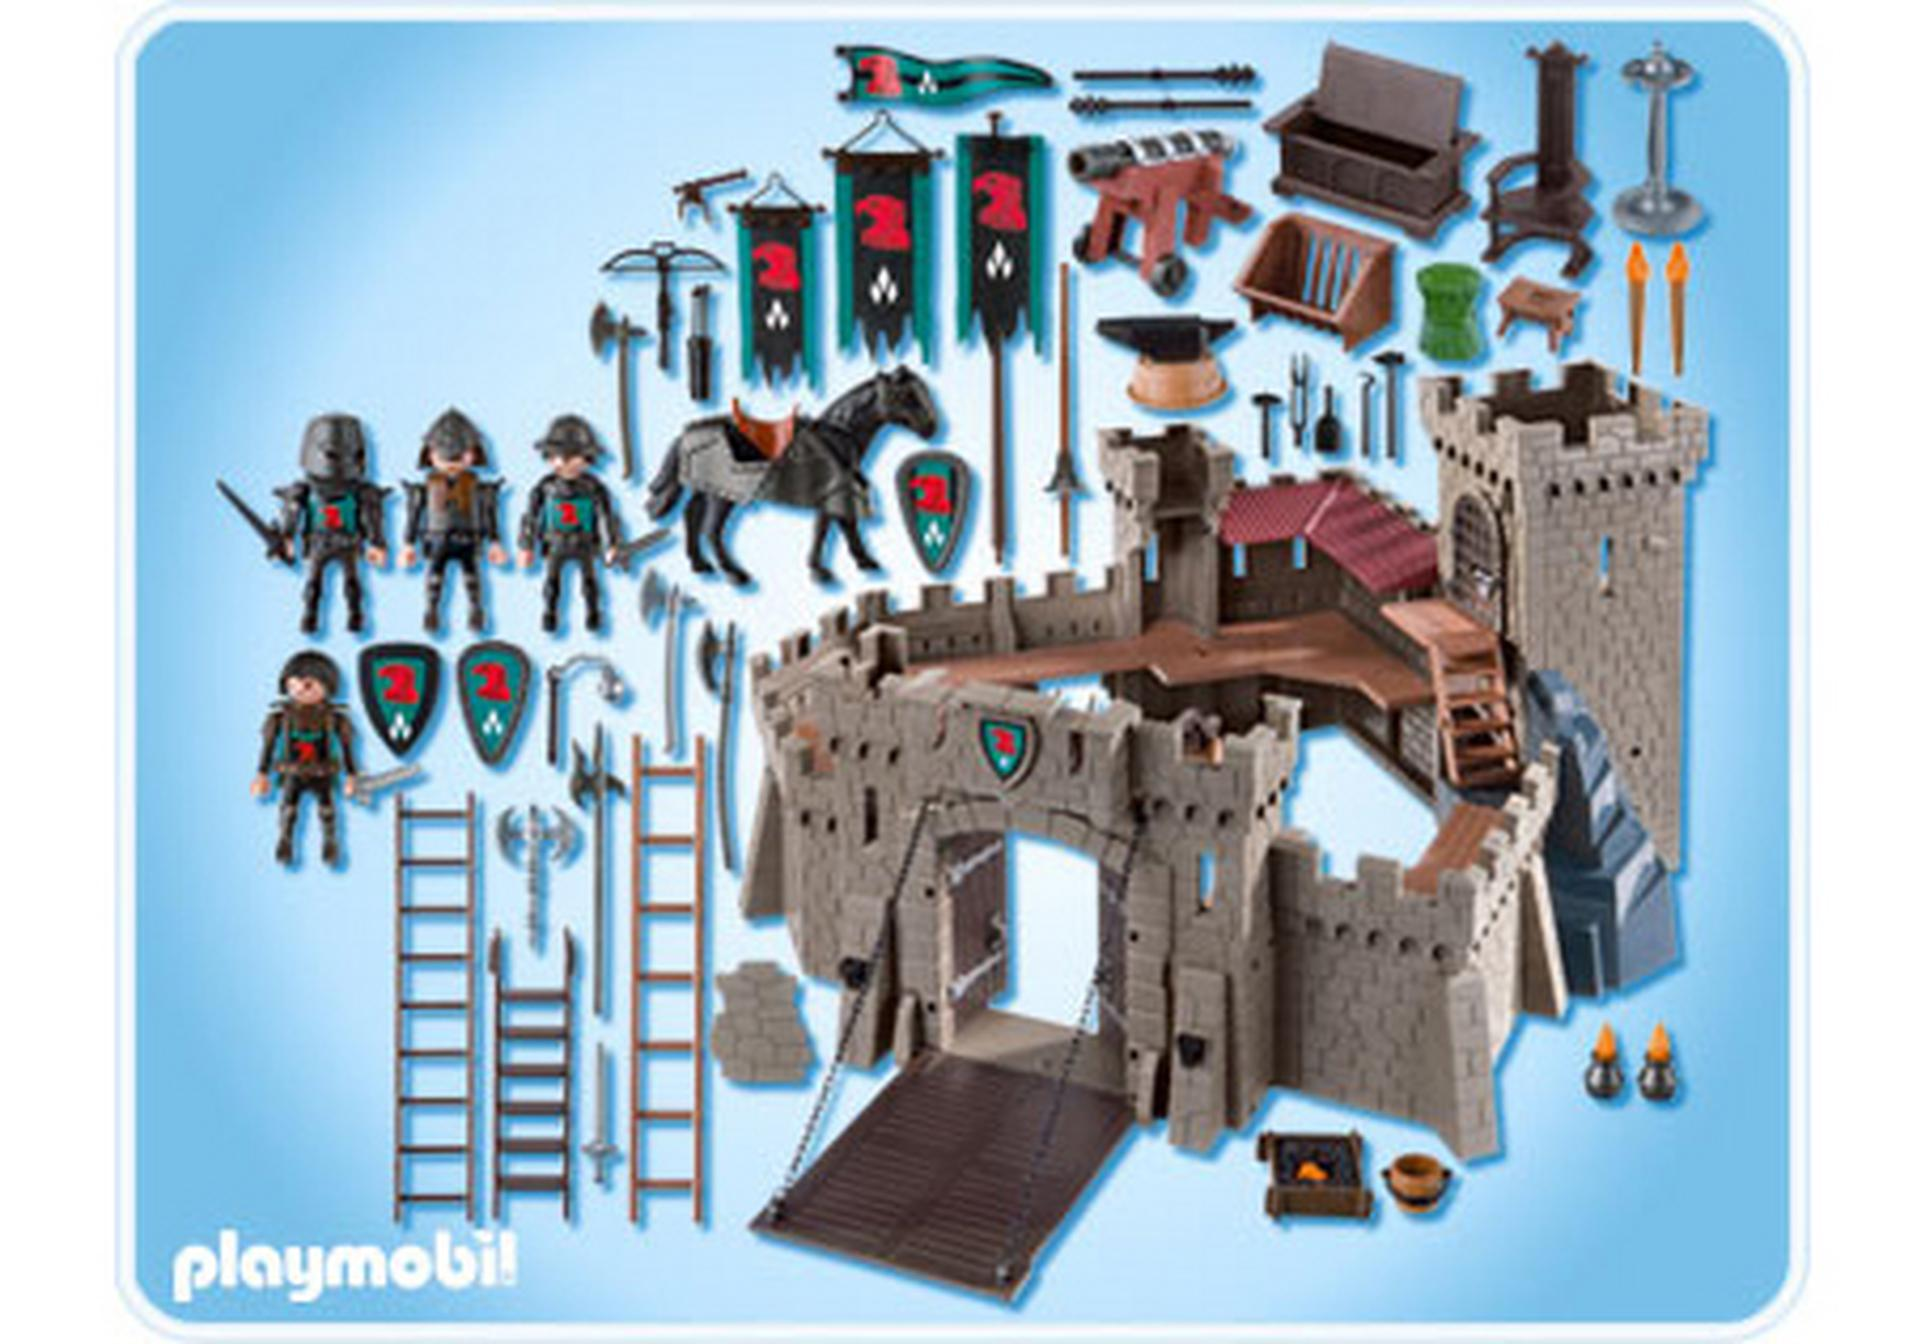 Forteresse des chevaliers du faucon 4866 a playmobil for Plan chateau fort playmobil